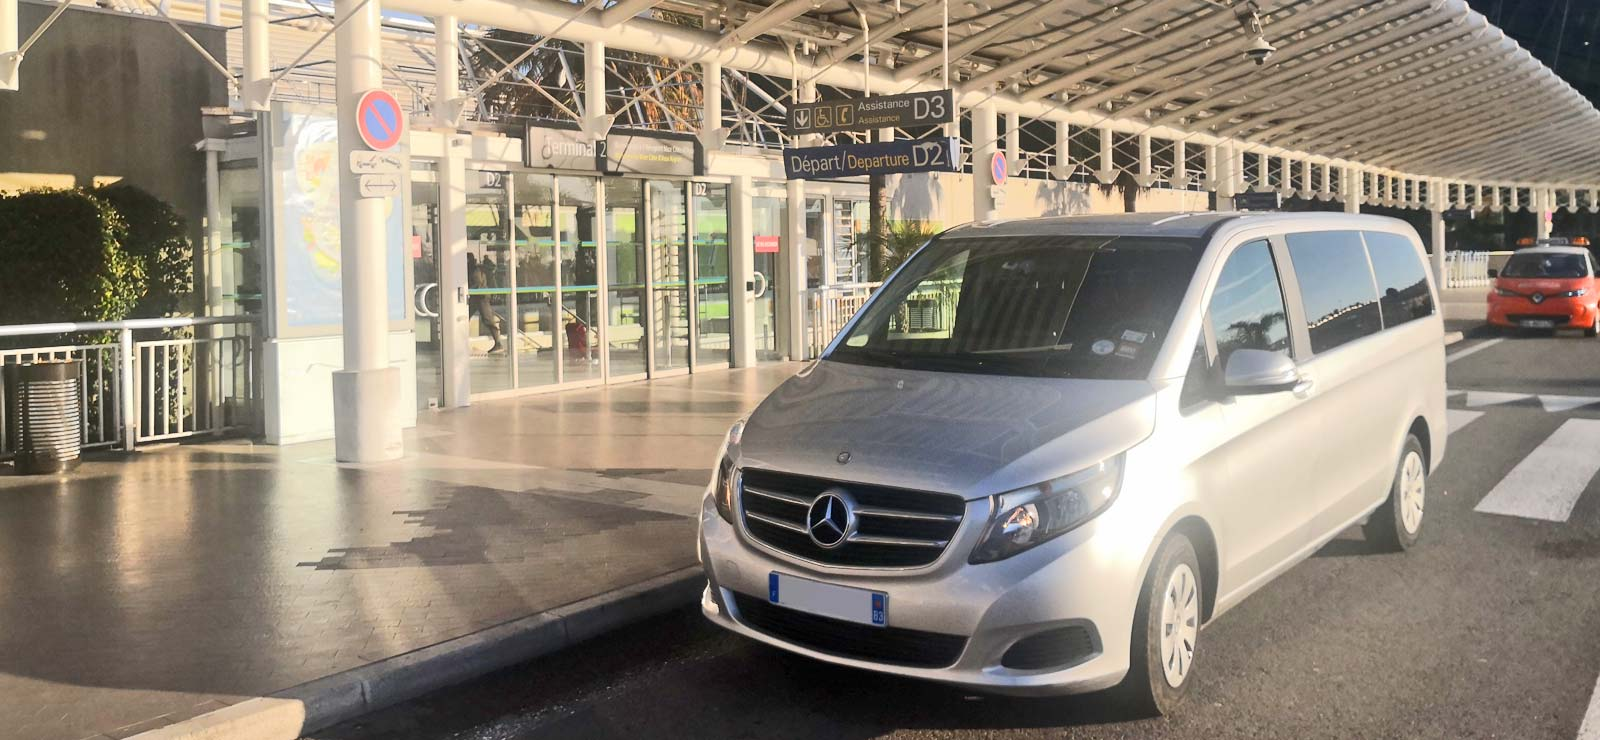 Airport and station transfers